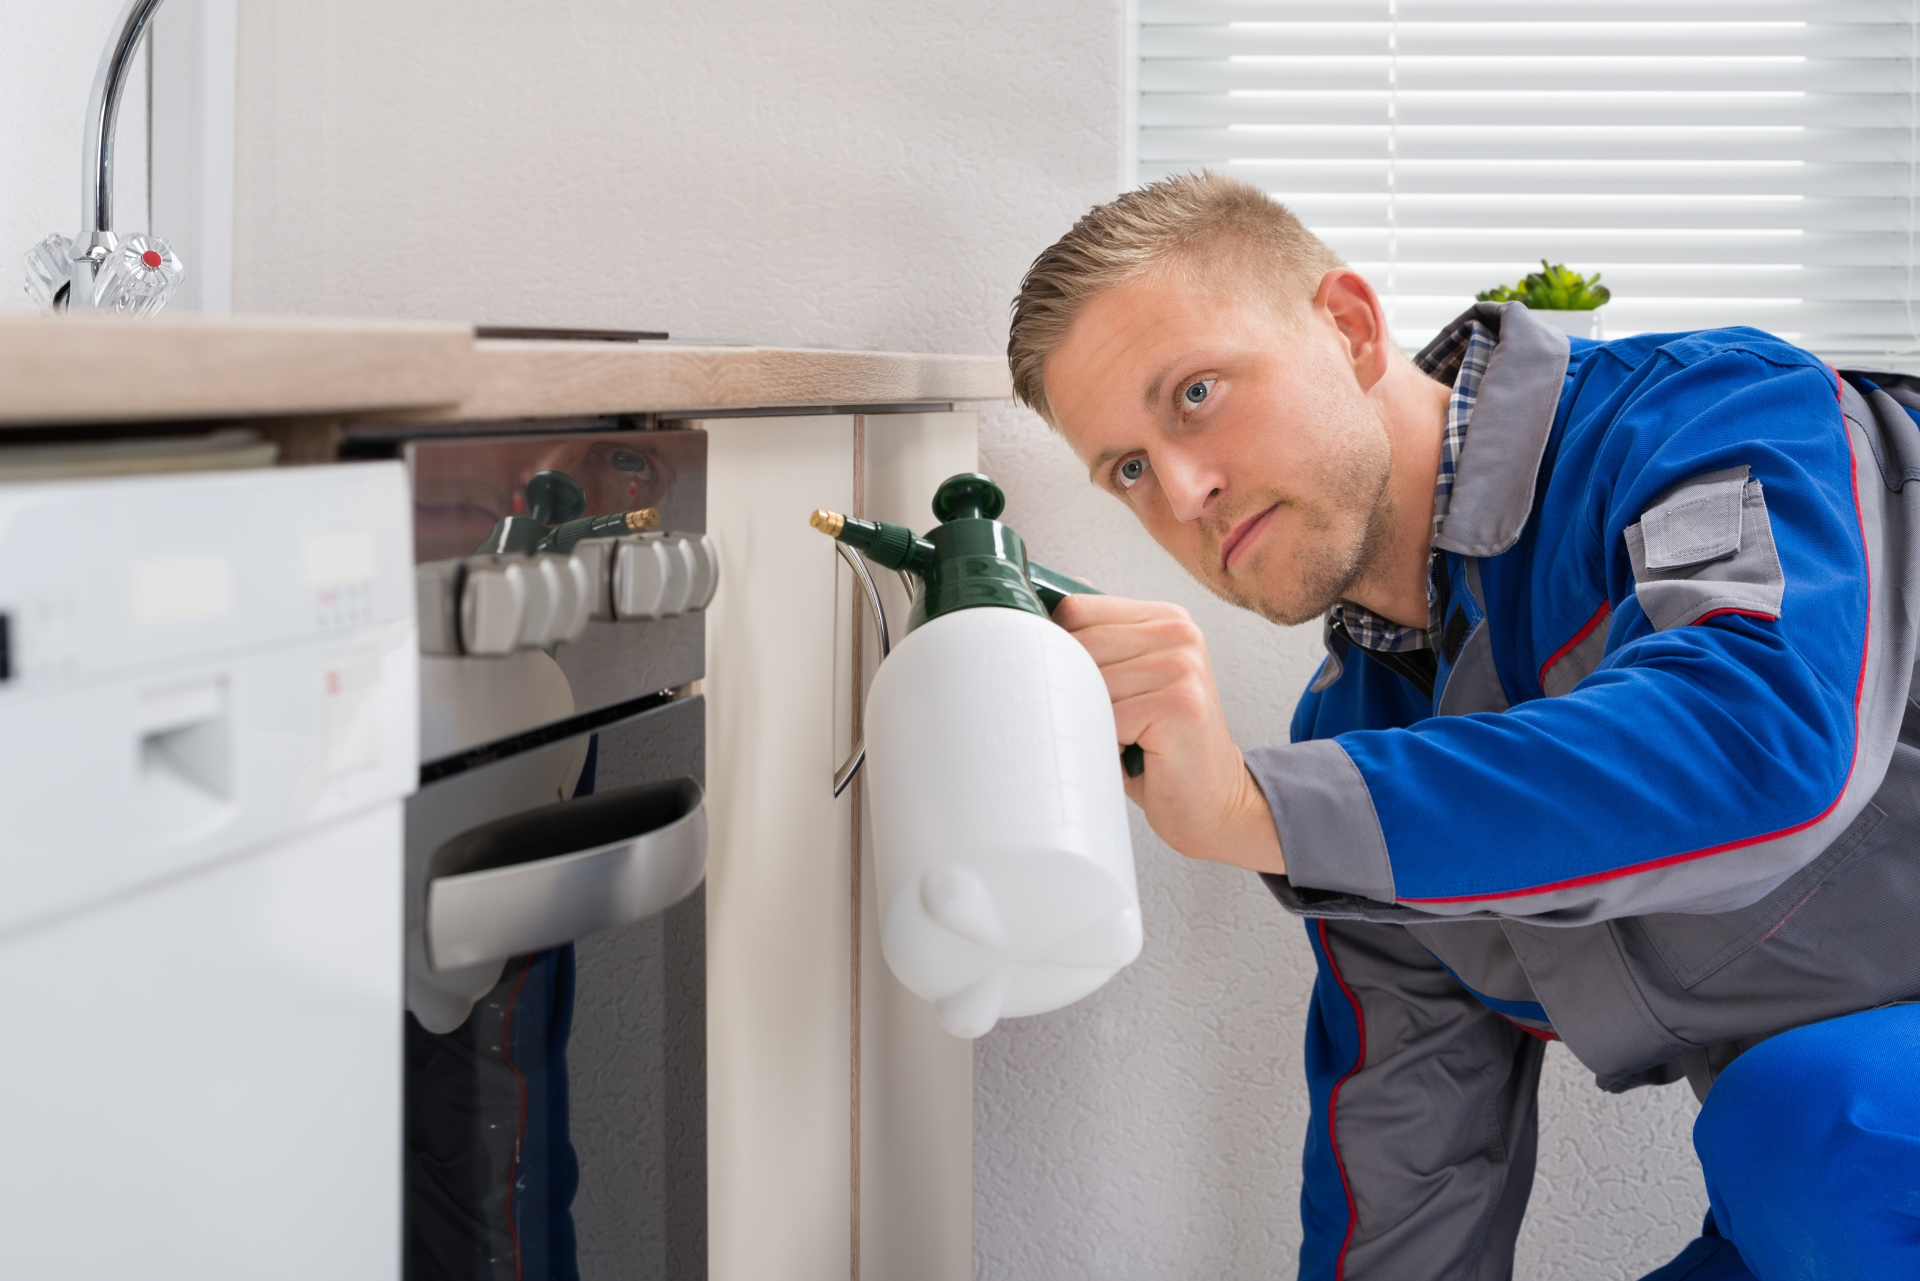 Pest Inspection, Pest Control in North Feltham, East Bedfont, TW14. Call Now 020 8166 9746